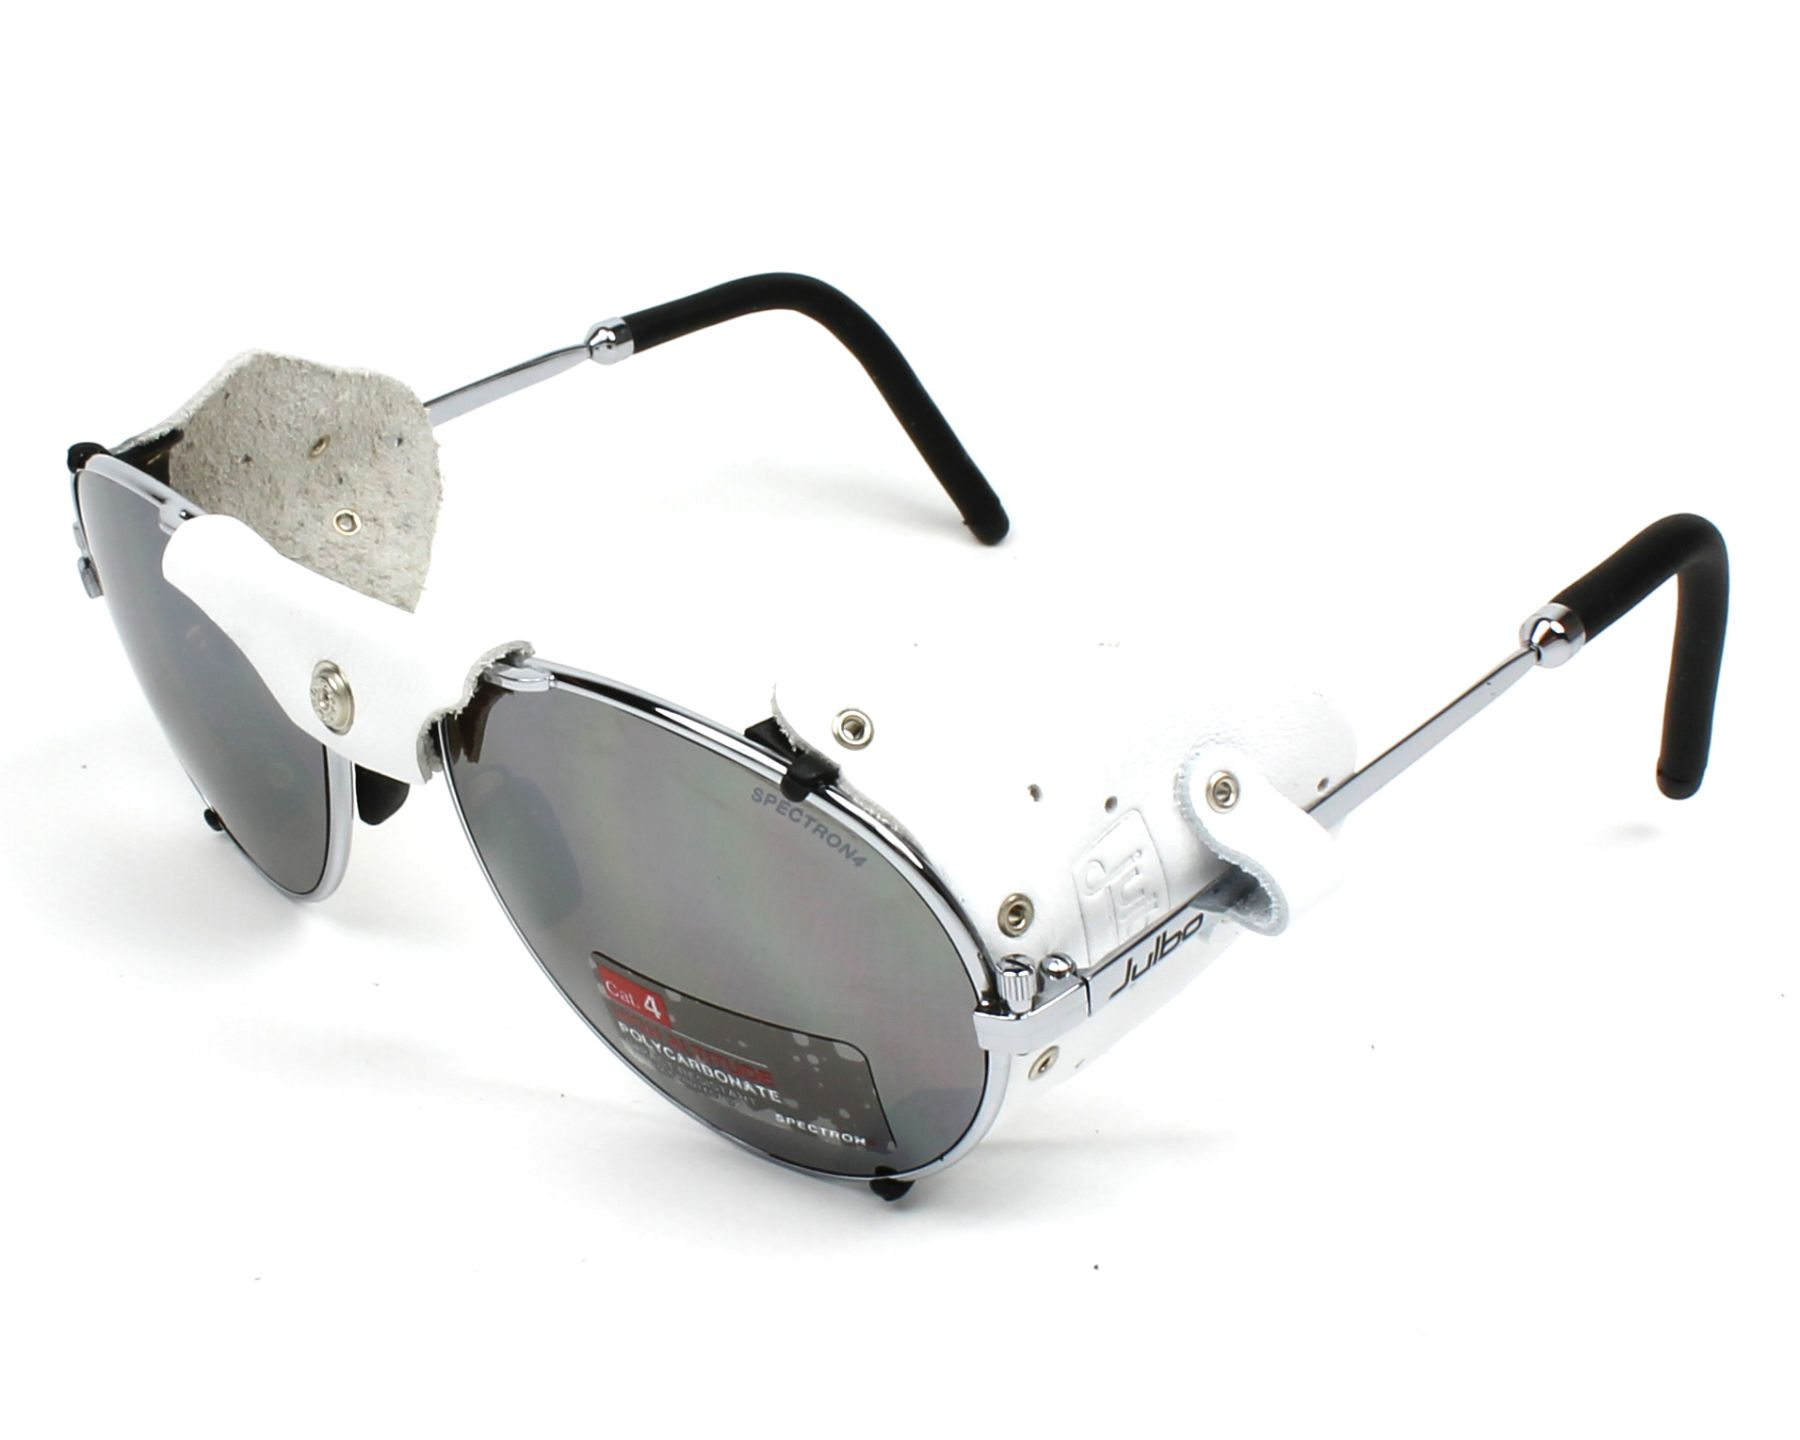 82ef333573 Sunglasses Julbo J020 1221 58-19 Gun White profile view